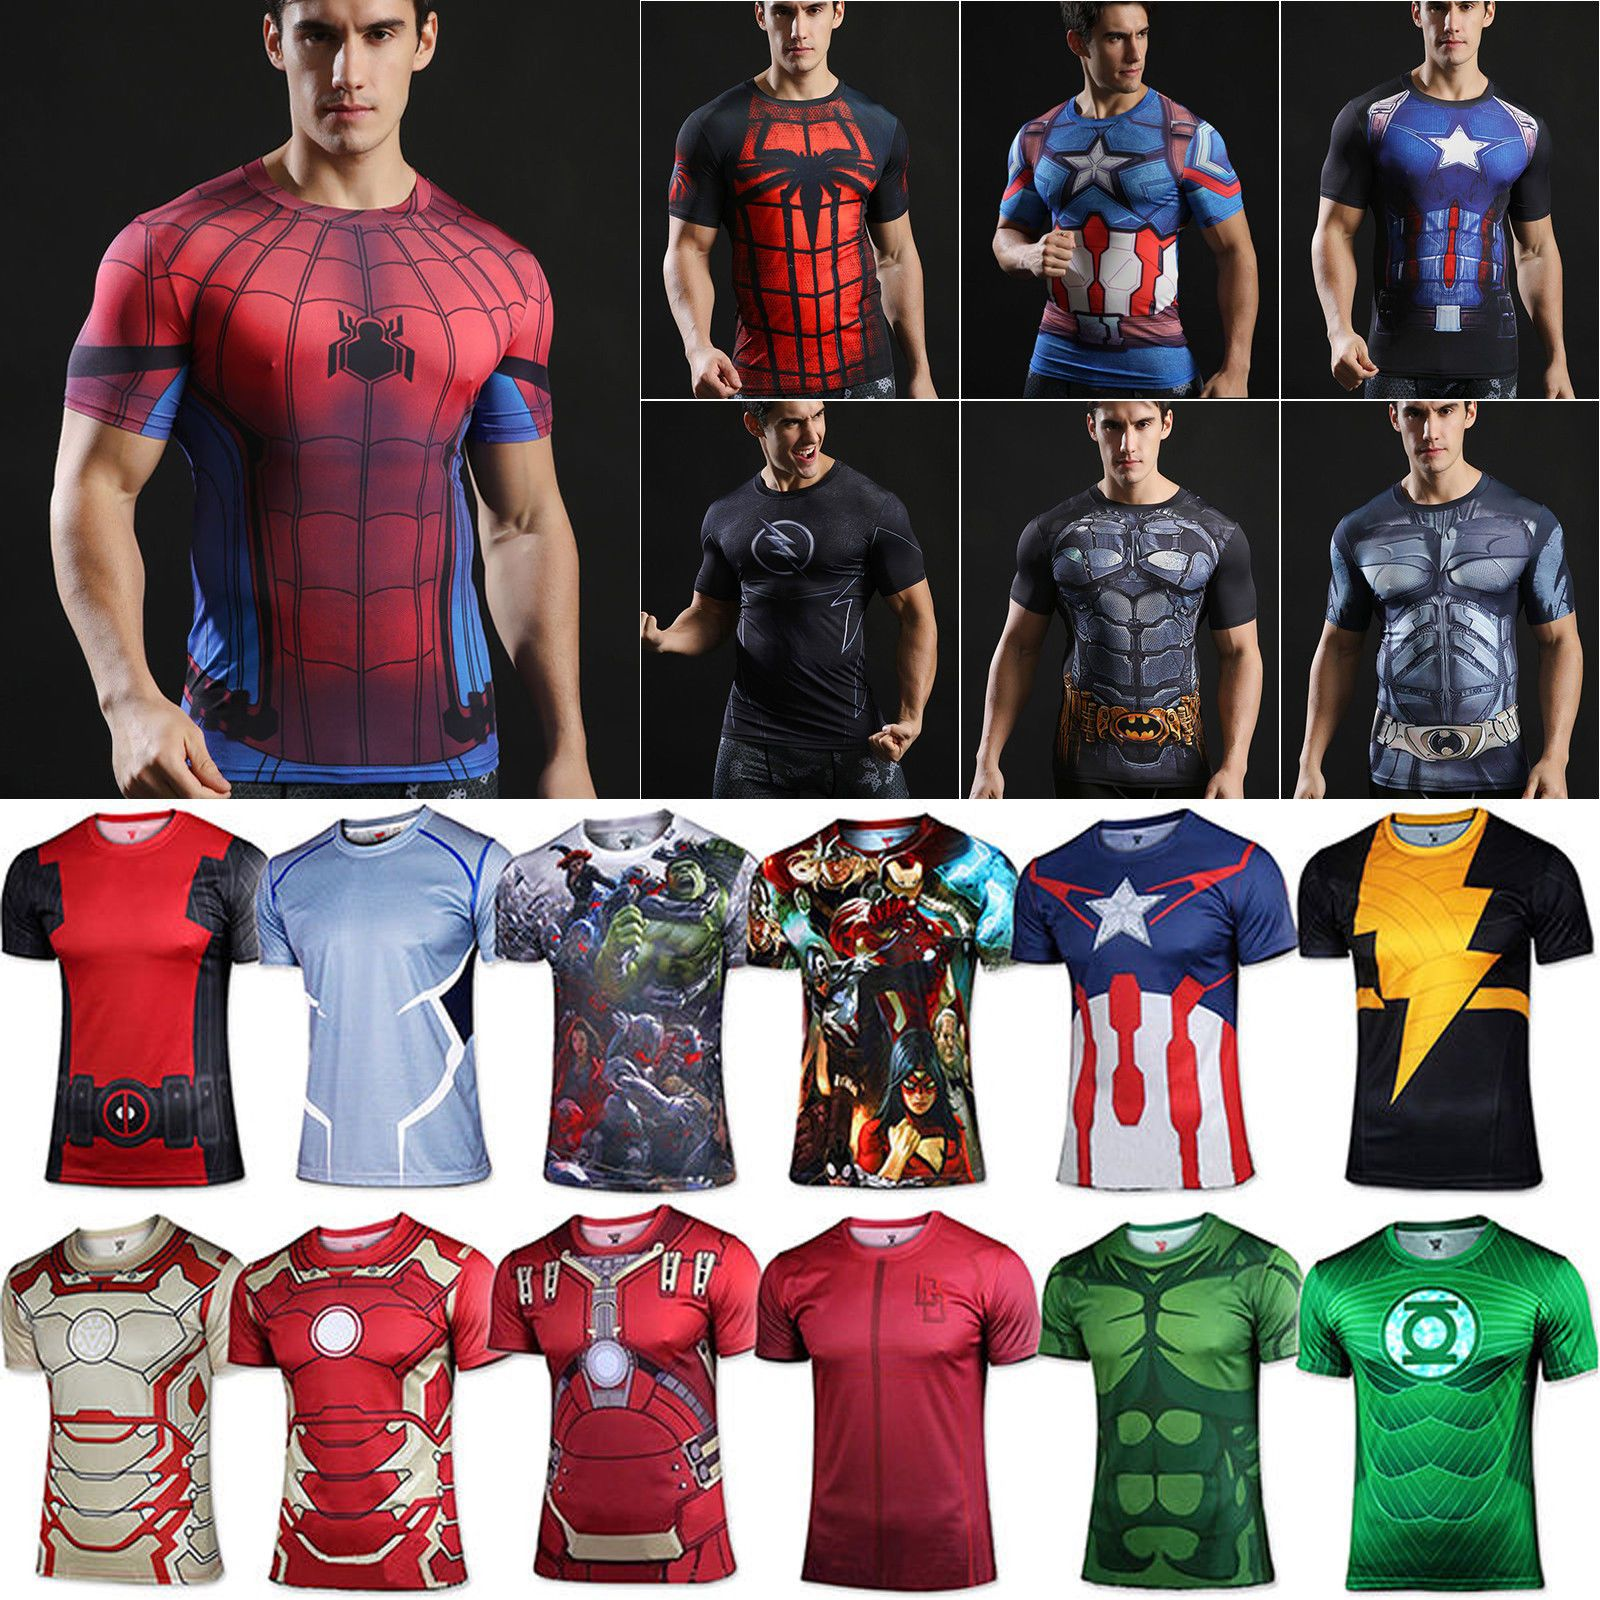 Men 3D Sports T-shirt Superhero Athletic Fitness Compression Gym Jersey Tops Tee